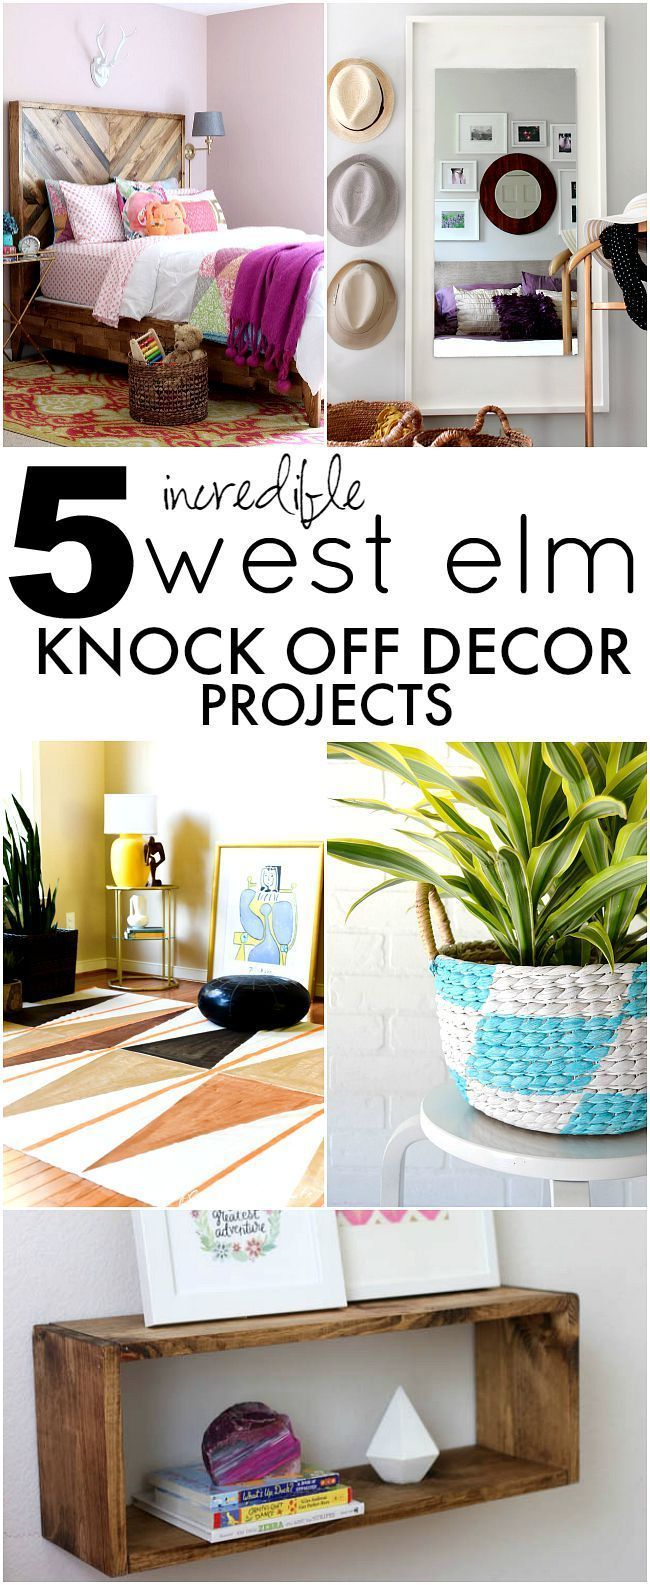 5 incredible West Elm knock offs to add a ton of style to your home decor on a budget!